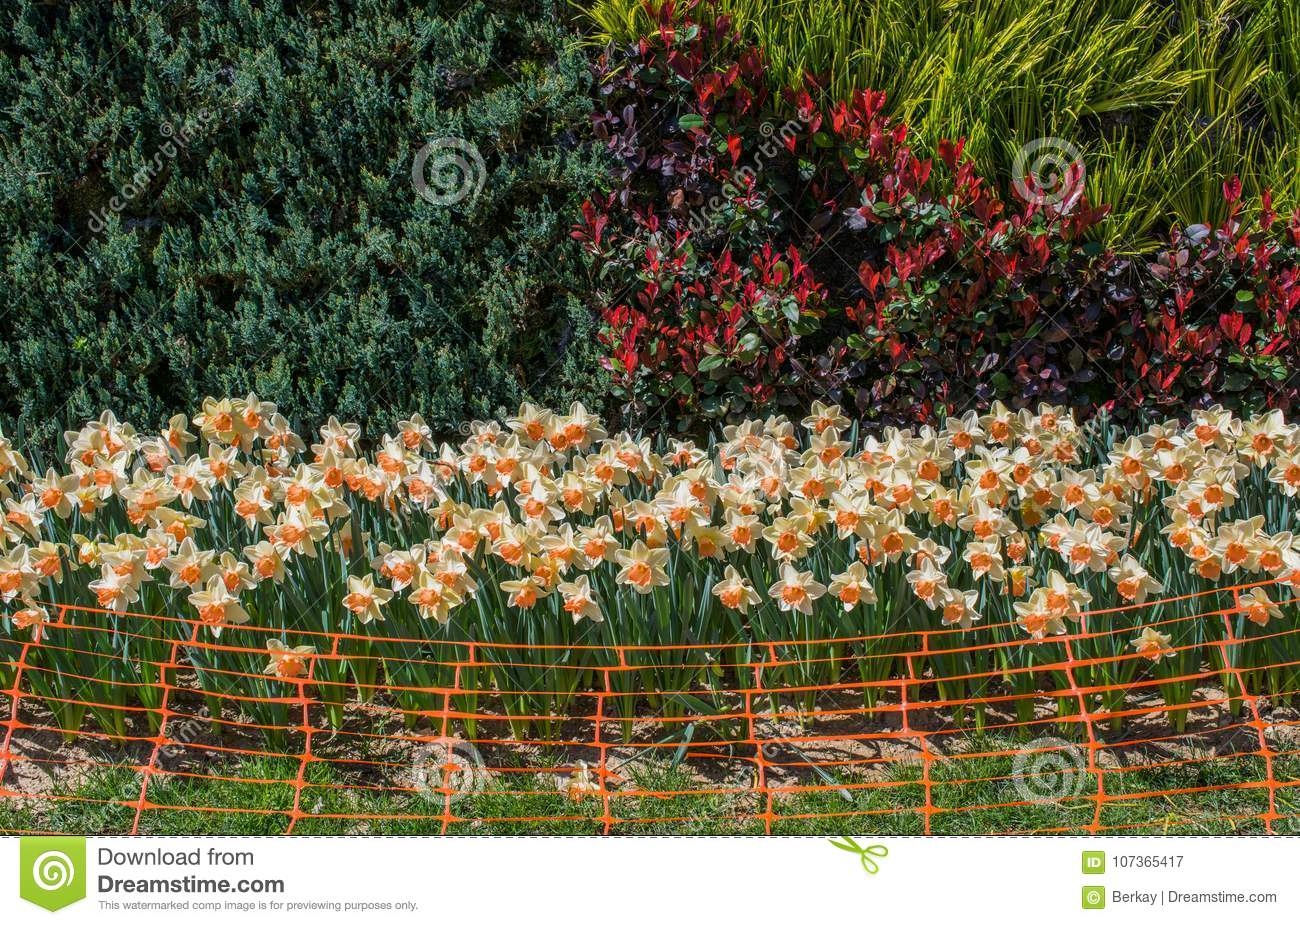 Rubber Fence In The Tulip Garden Stock Image - Image of colored ...